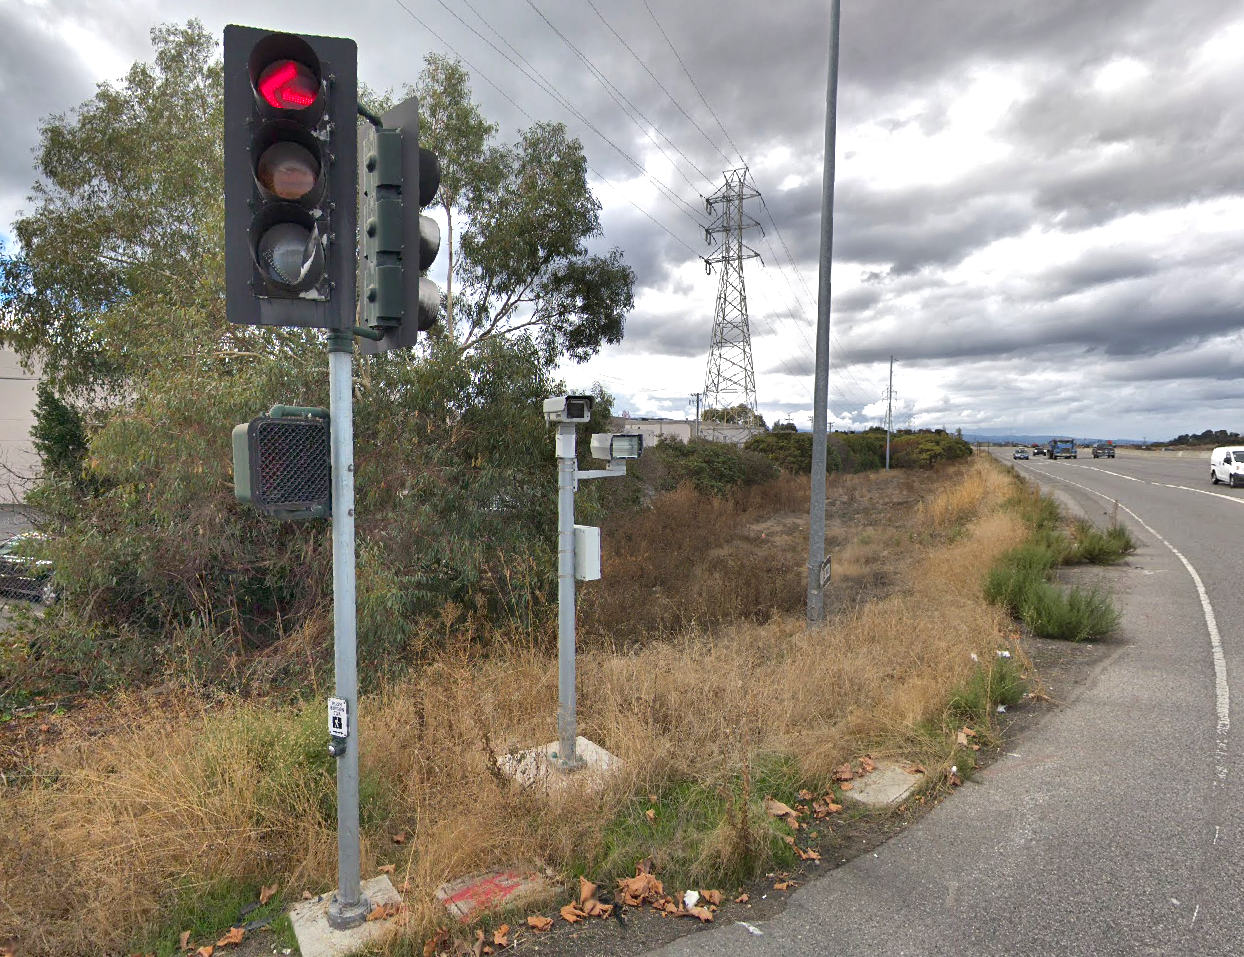 Future of red-light cameras is up in the air - Palo Alto